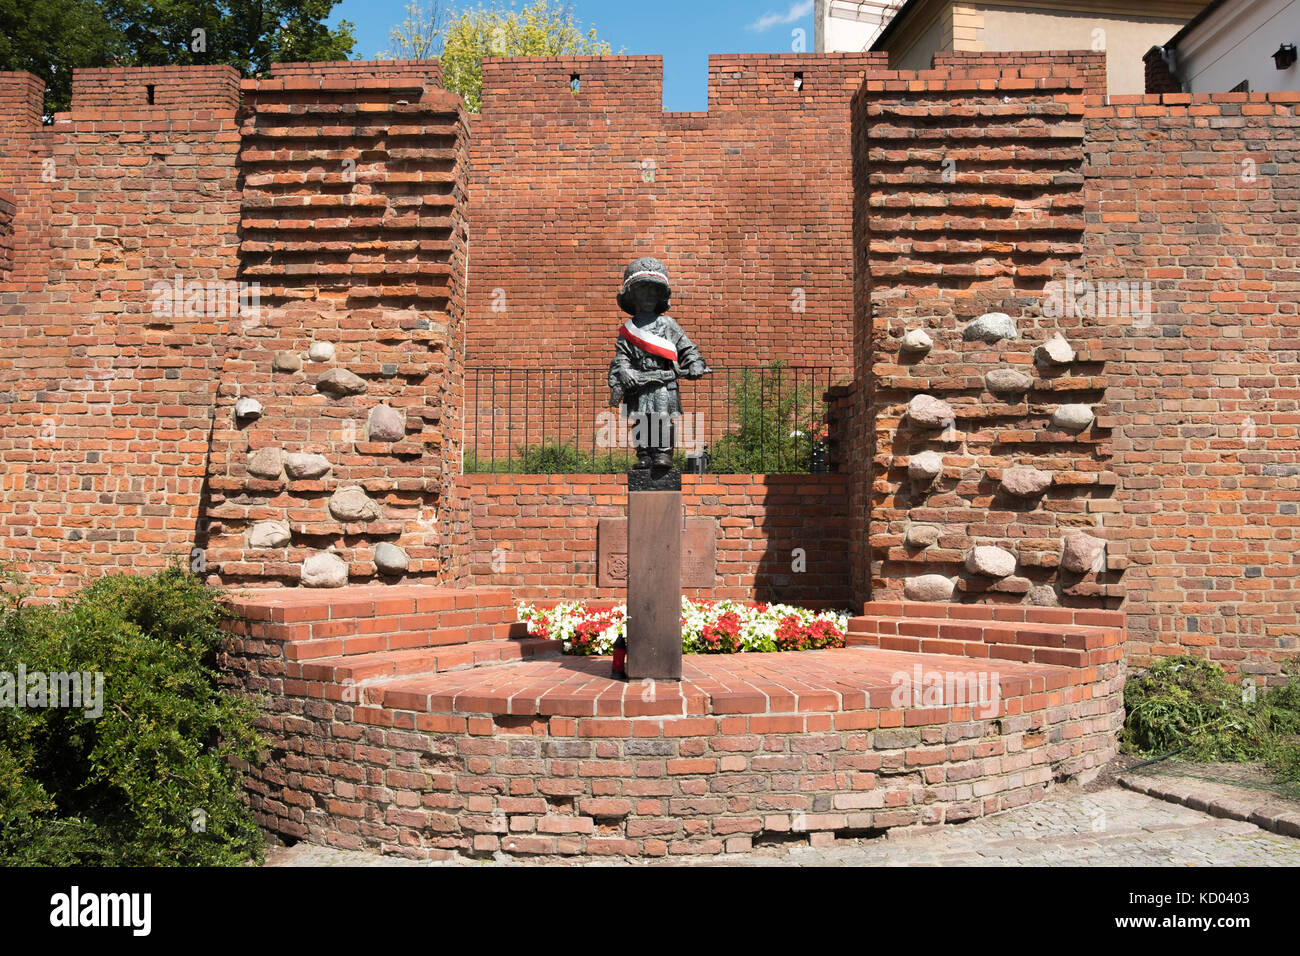 The Statue of the Little Insurgent, Warsaw, Poland. Stock Photo